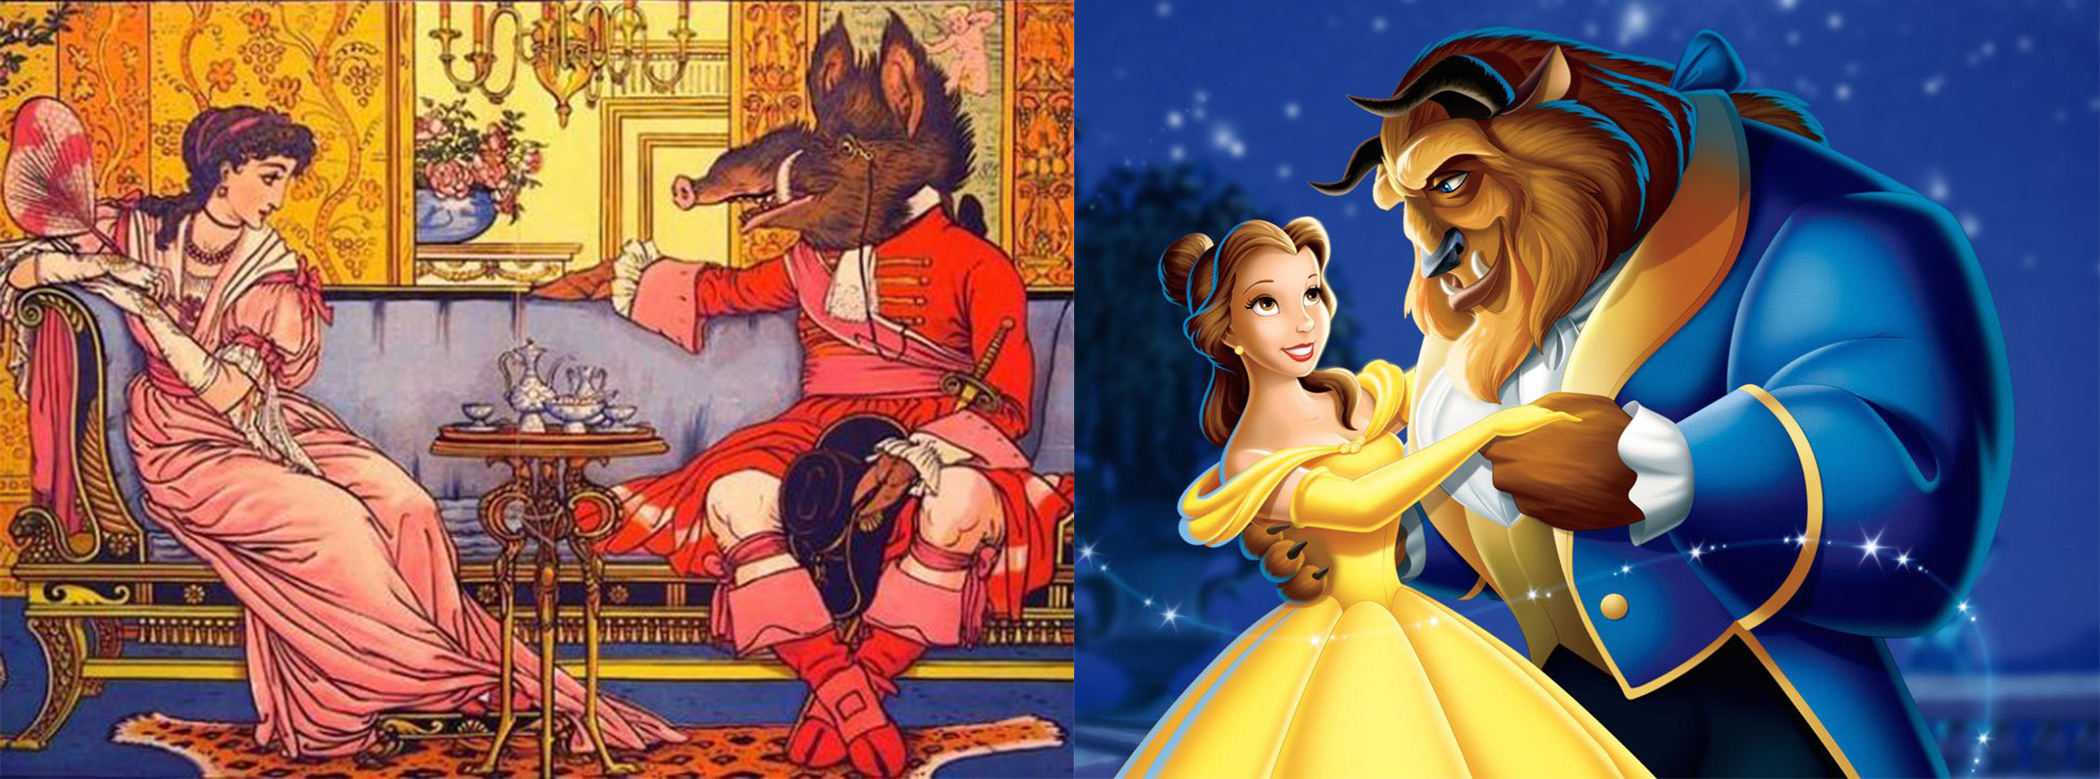 "A Brief History Behind ""Beauty and the Beast"""